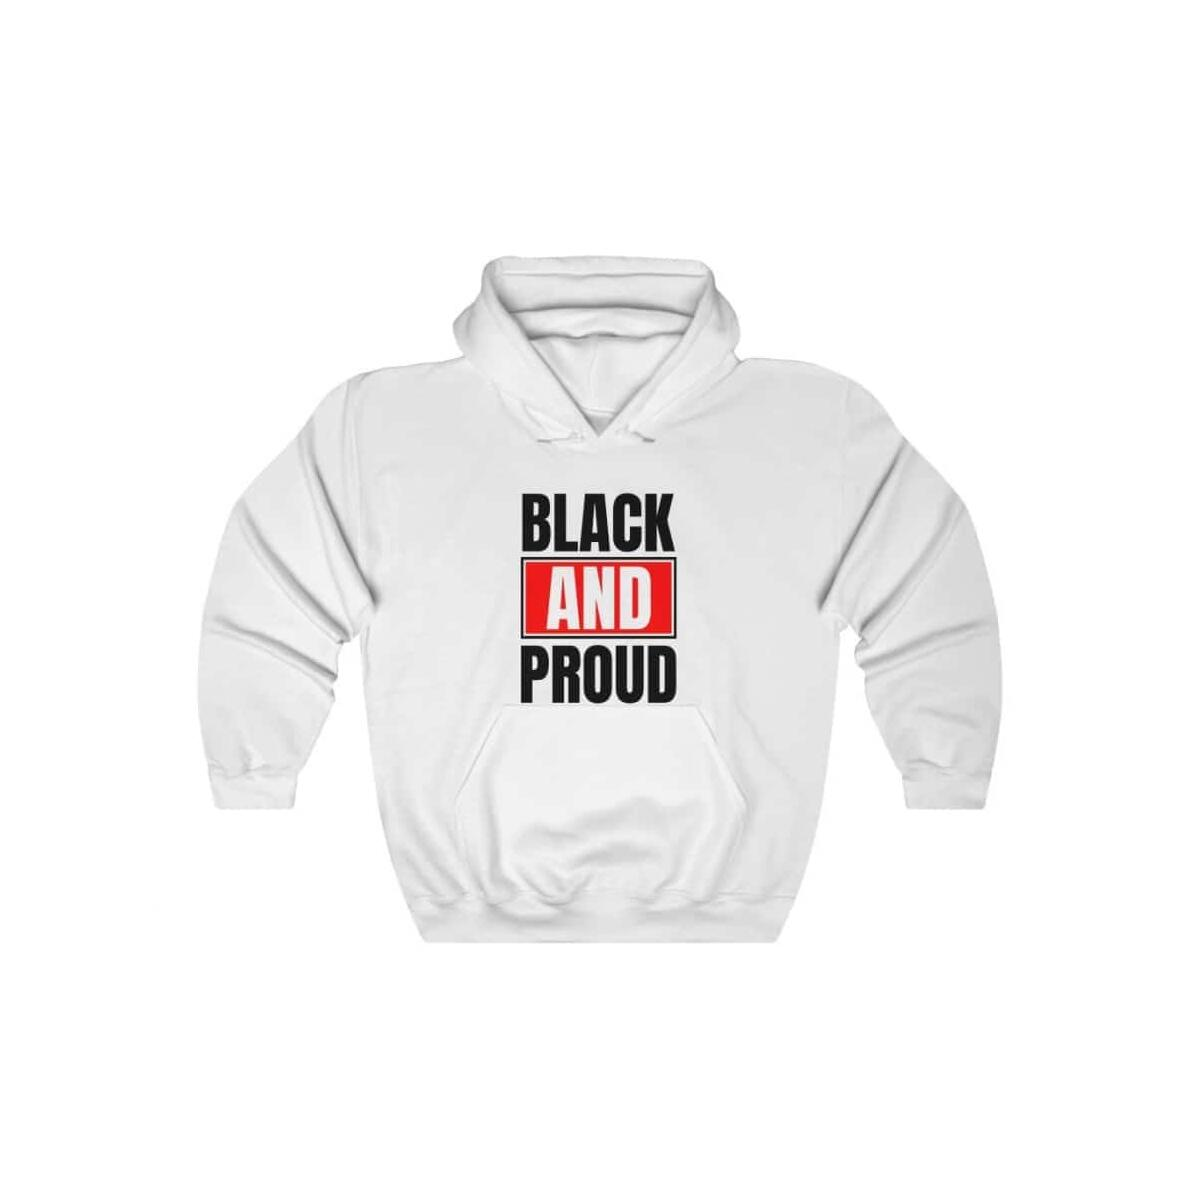 Afrocentric BLACK AND PROUD Hooded Sweatshirt, White / 4XL